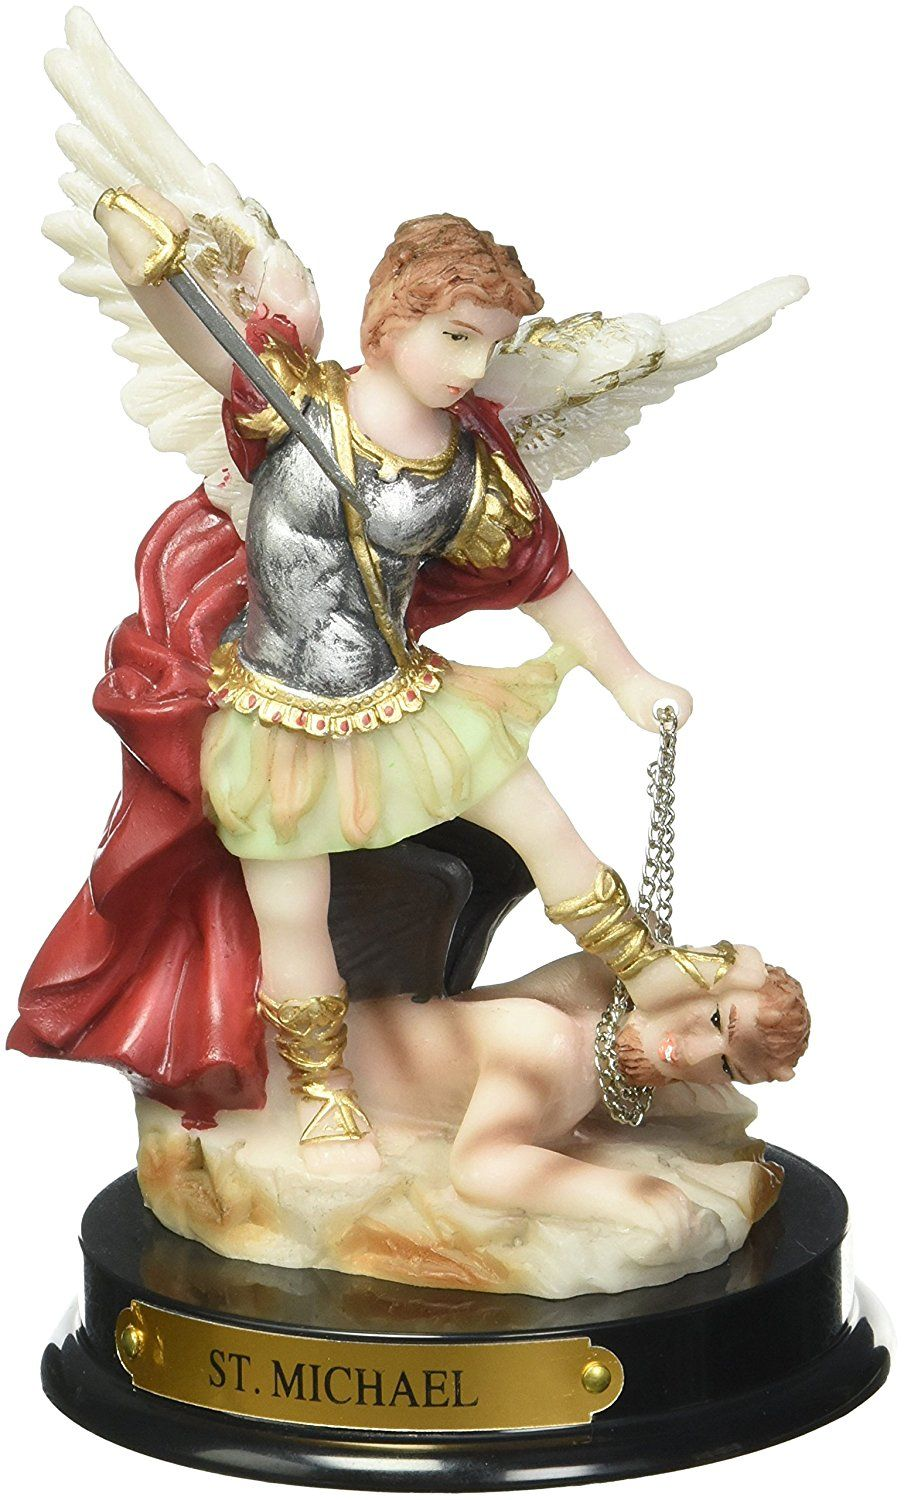 Chen Imports 5-Inch Saint Michael the Archangel Holy Figurine Religious Decoration George S